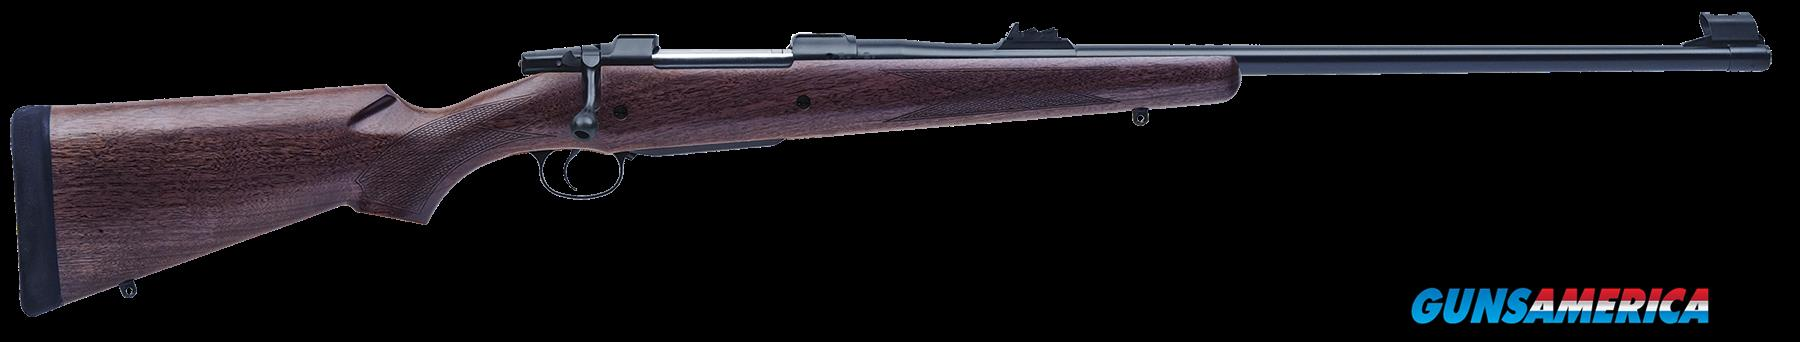 "CZ 04211 CZ 550 American Safari Magnum Bolt 375 Holland & Holland Magnum 25"" 5+1 Walnut Stk Blued  Guns > Rifles > C Misc Rifles"